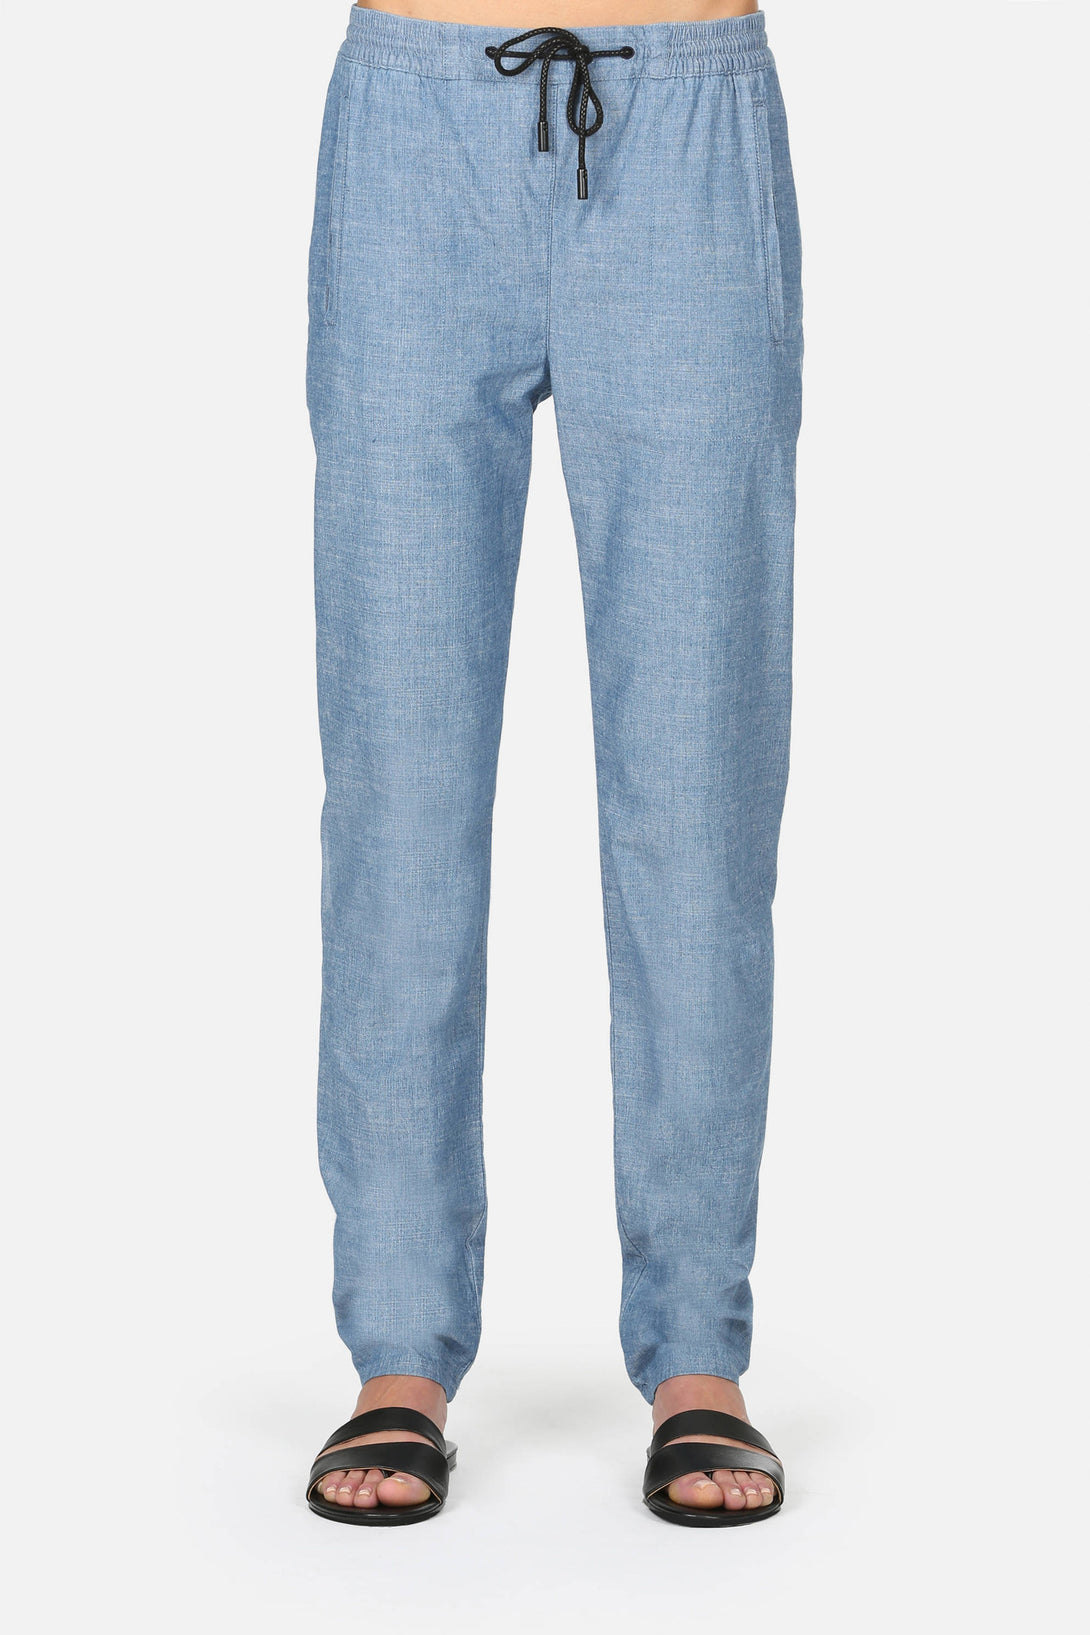 Loose Pant - Chambray Blue